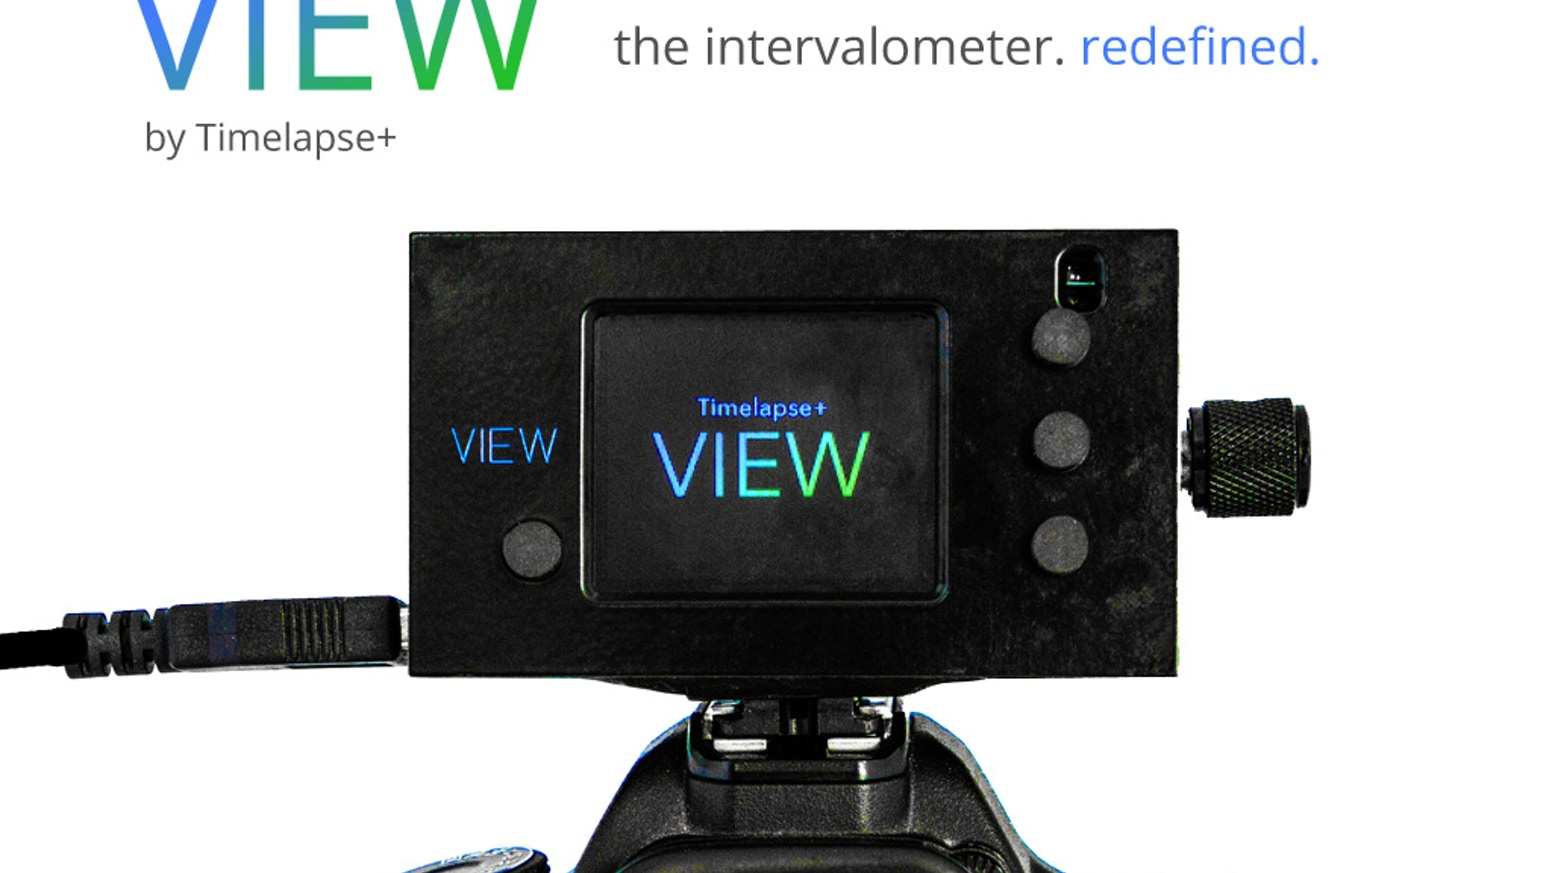 A smart auto ramping intervalometer that's also a portal to your camera.  Setup and preview time-lapse from the VIEW or your smartphone